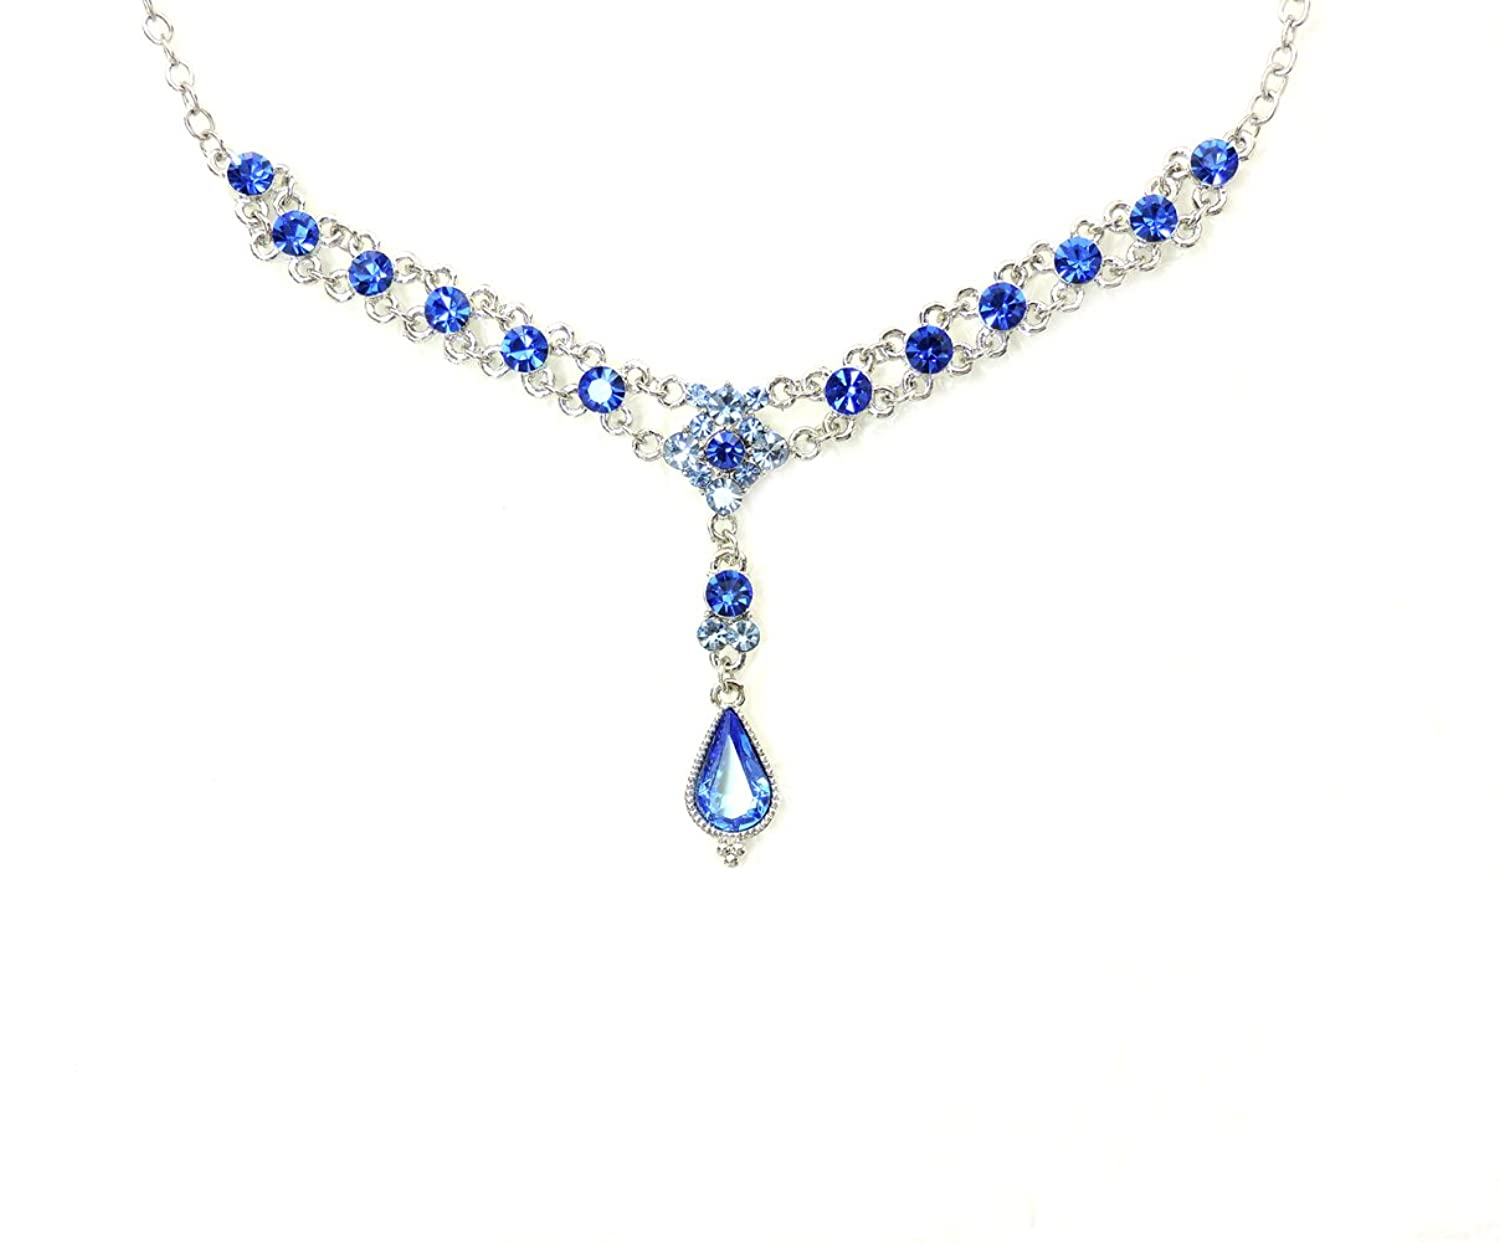 Faship Necklace Earrings Set Teardrop Floral Emerald Sapphire Blue Crystal